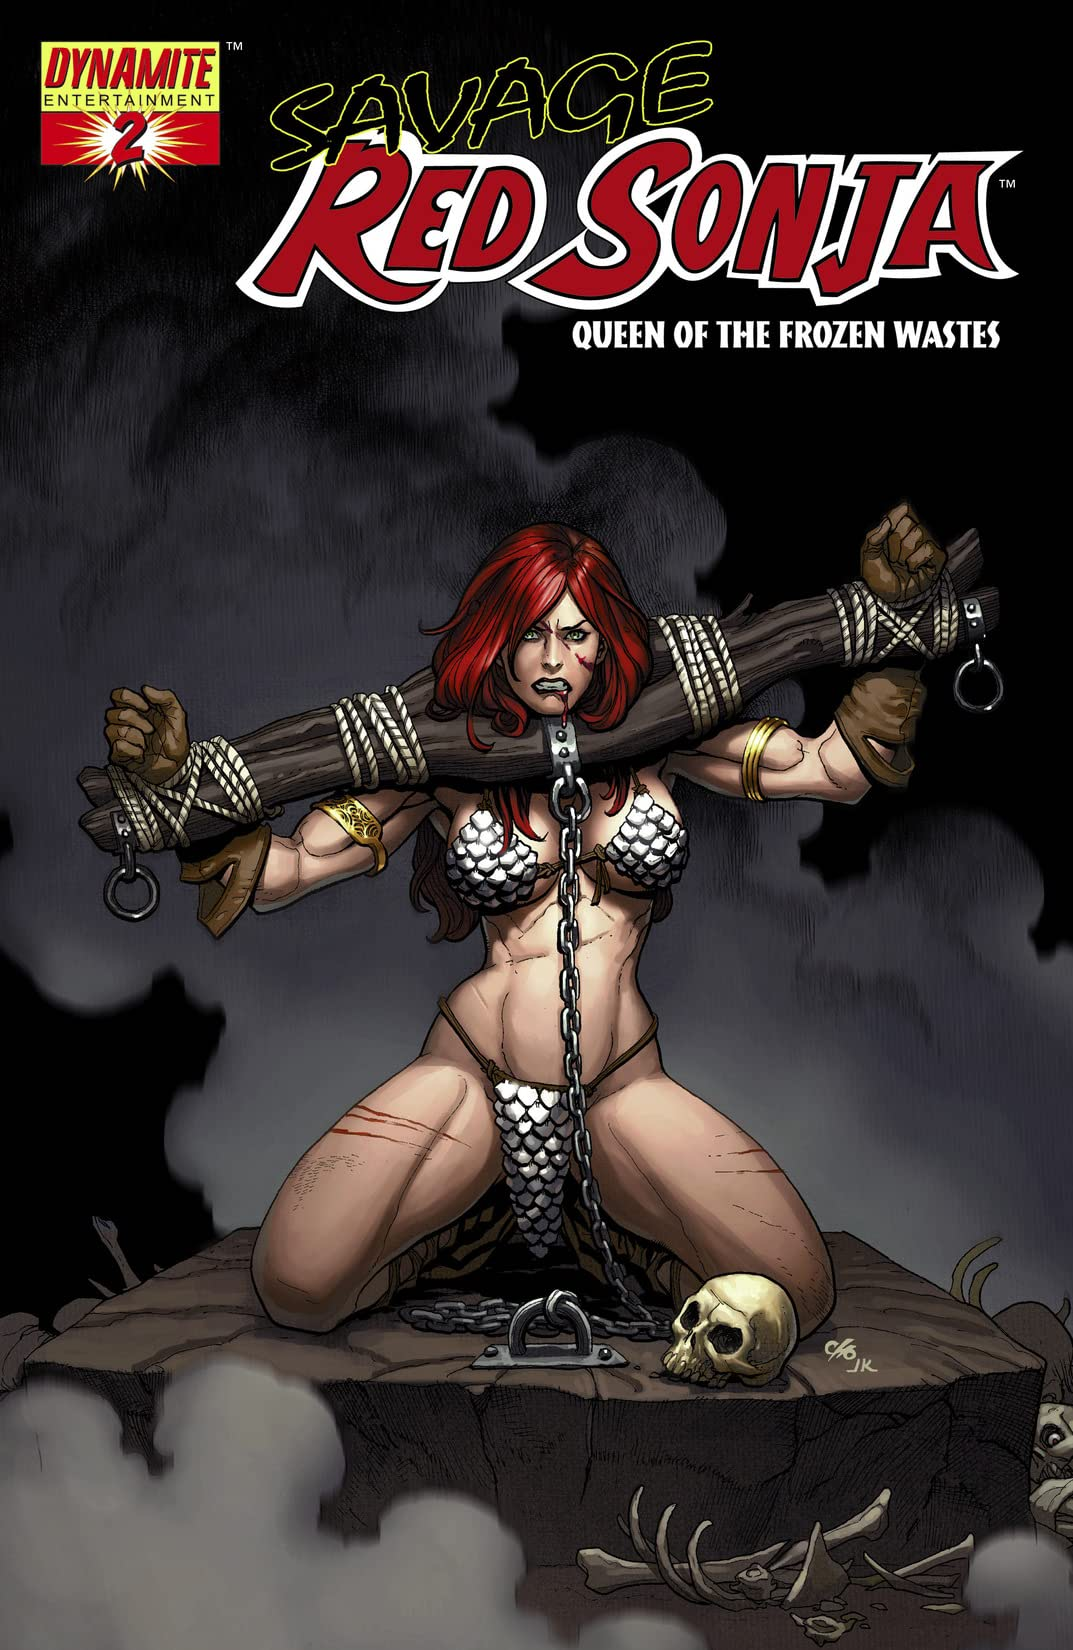 Red Sonja: Queen Of The Frozen Wastes #2